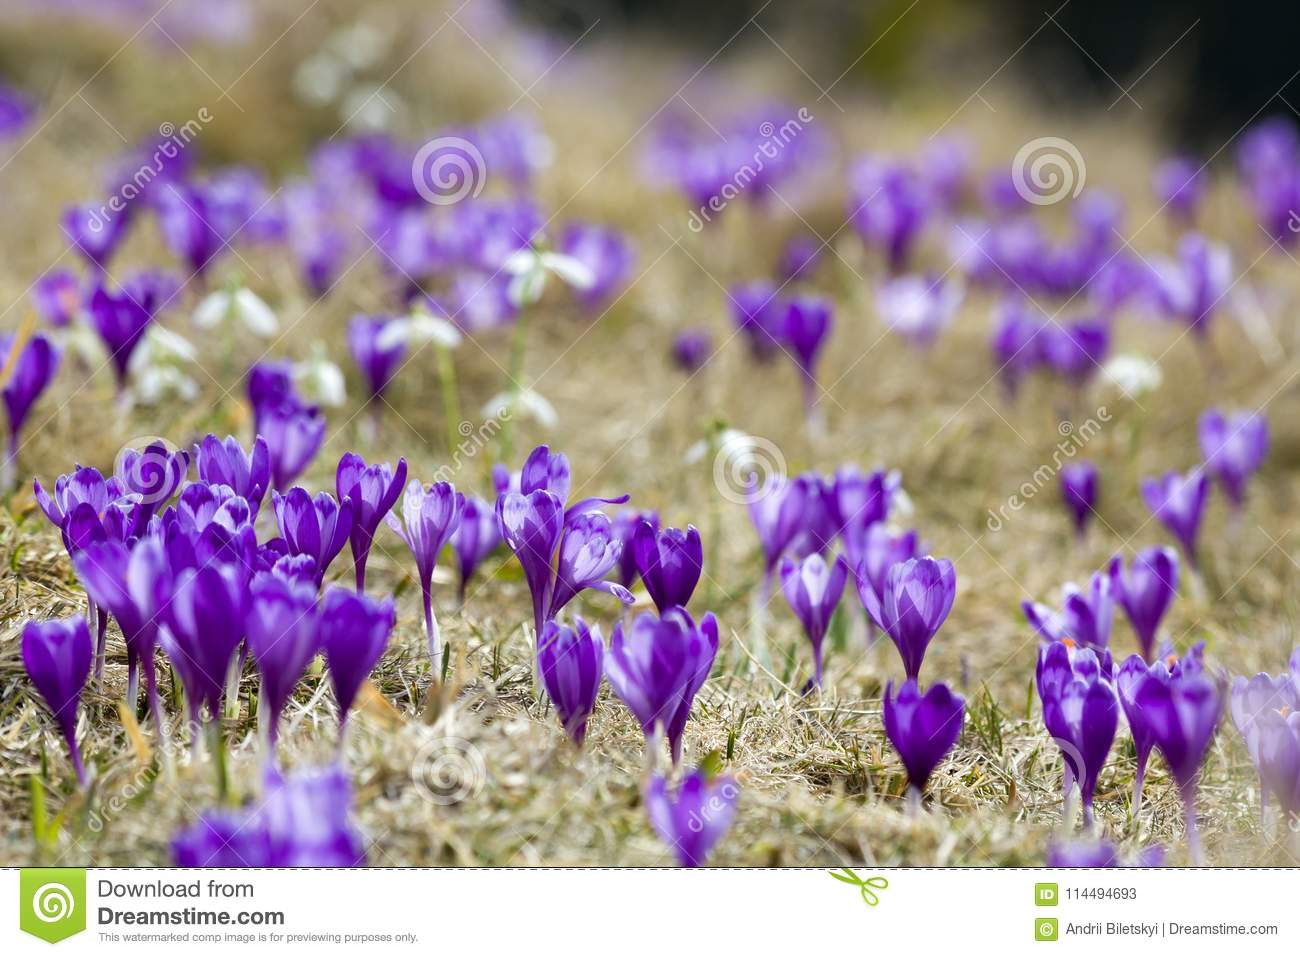 Beautiful view of marvelously blooming violet crocuses in the Carpathian mountains valley on bright spring morning. Ecology proble